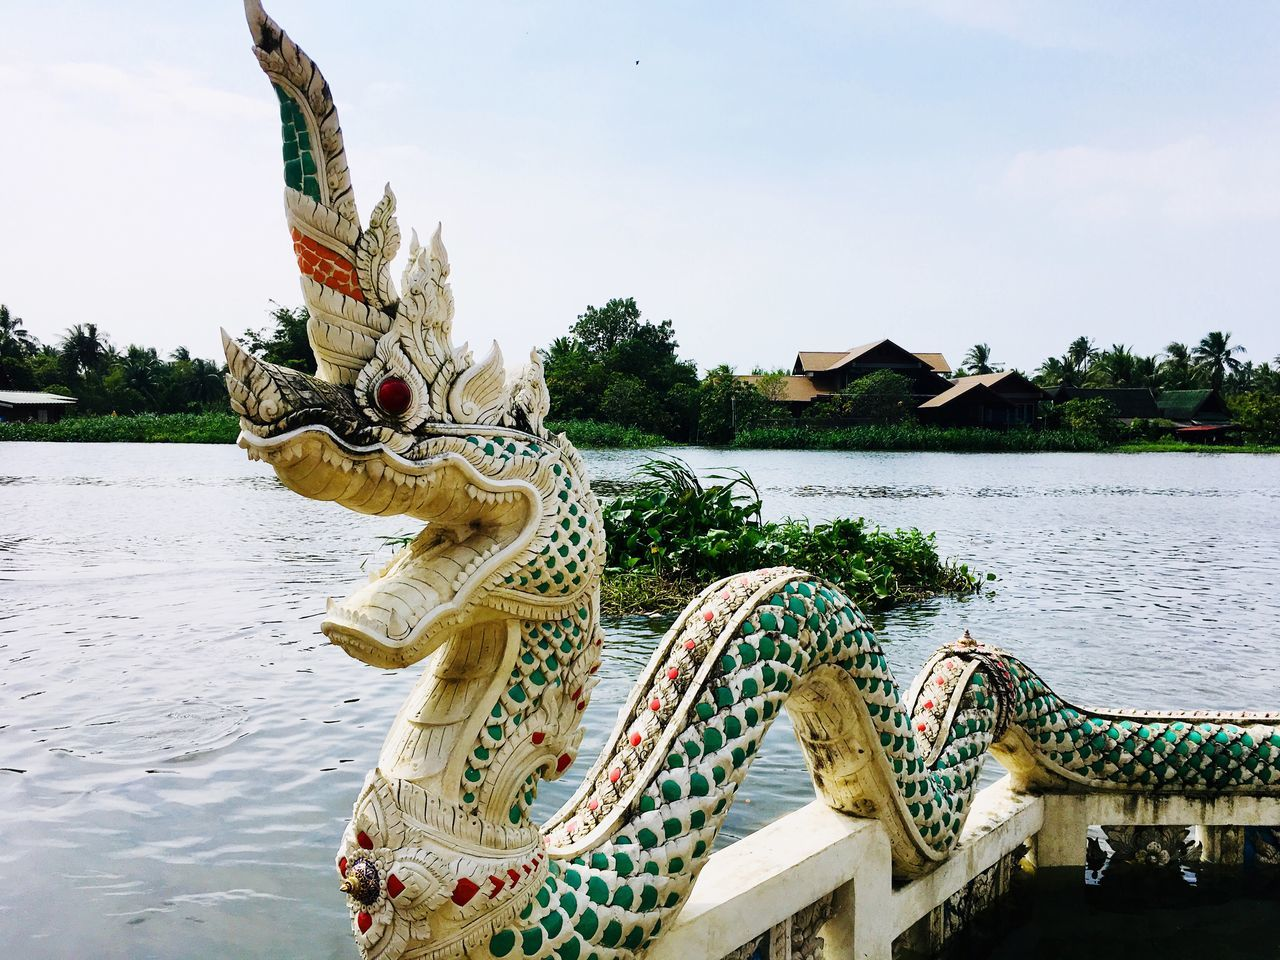 Sculpture Statue Animal Representation Art And Craft Water Naga Naga Decorative Temple Thailand Day Outdoors Sky No People Tree Animal Themes Nature